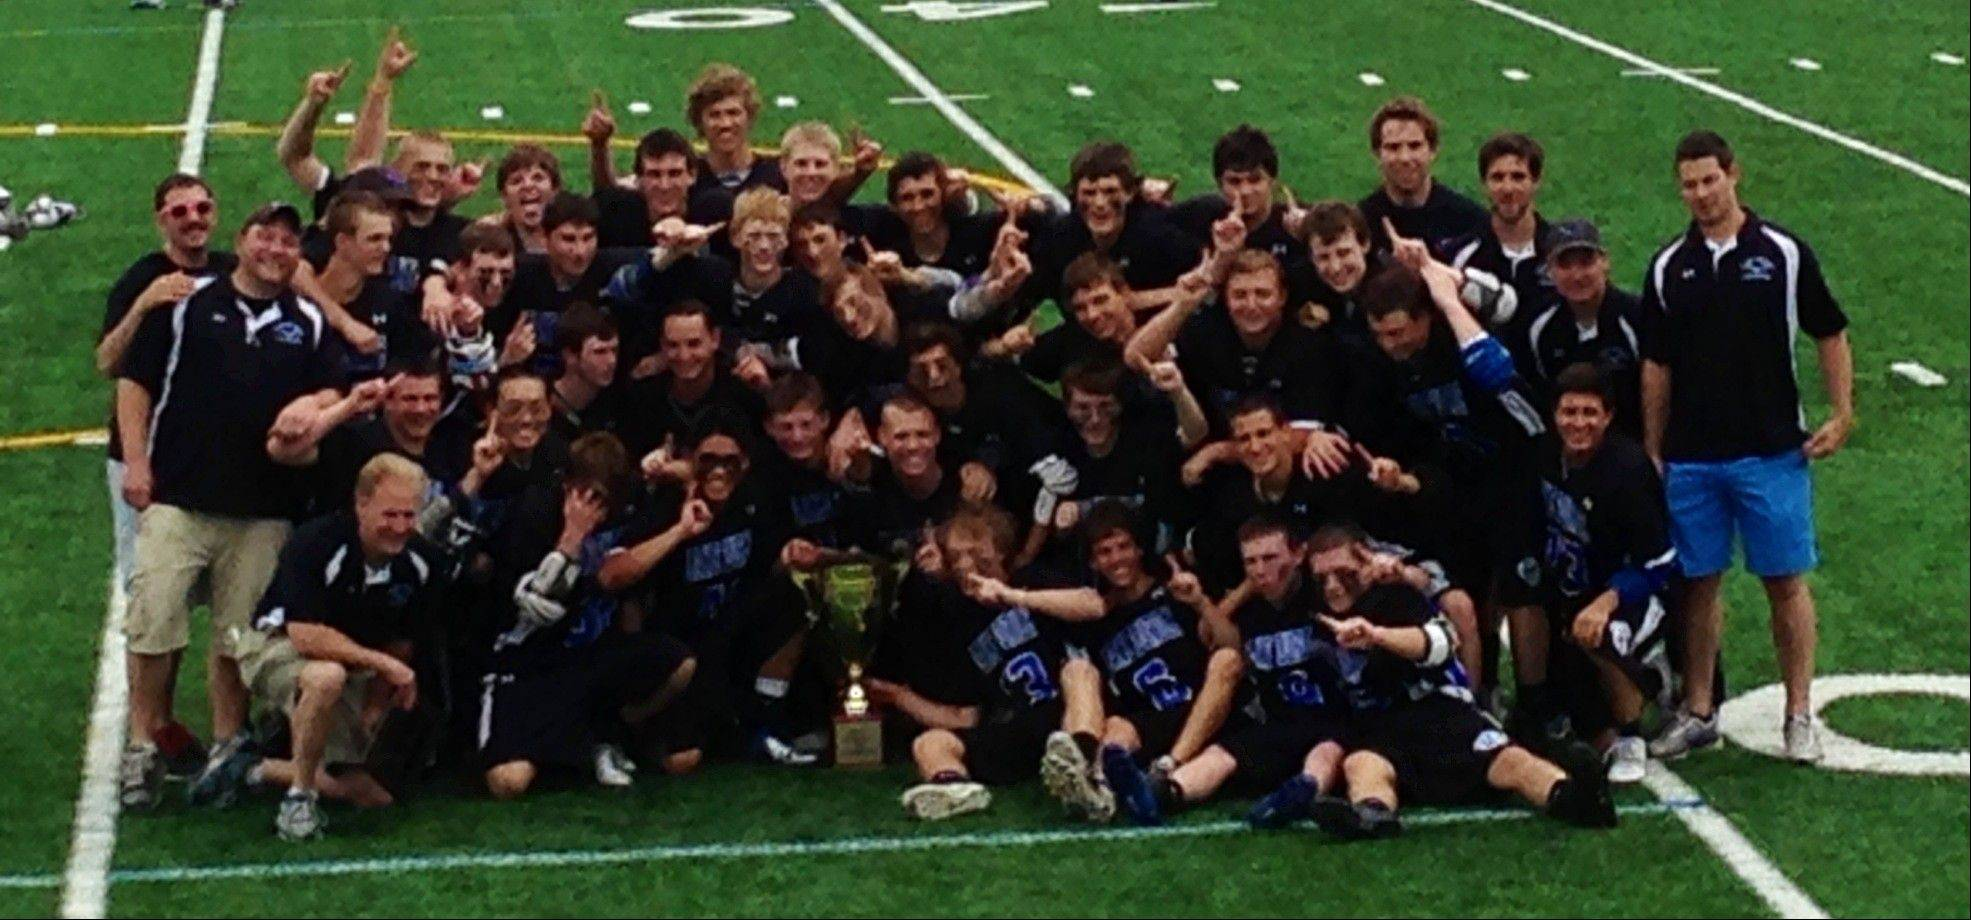 Lake Zurich�s boys lacrosse team celebrates after beating Naperville Central 13-6 to capture the Lacrosse Cup at New Trier on Saturday.